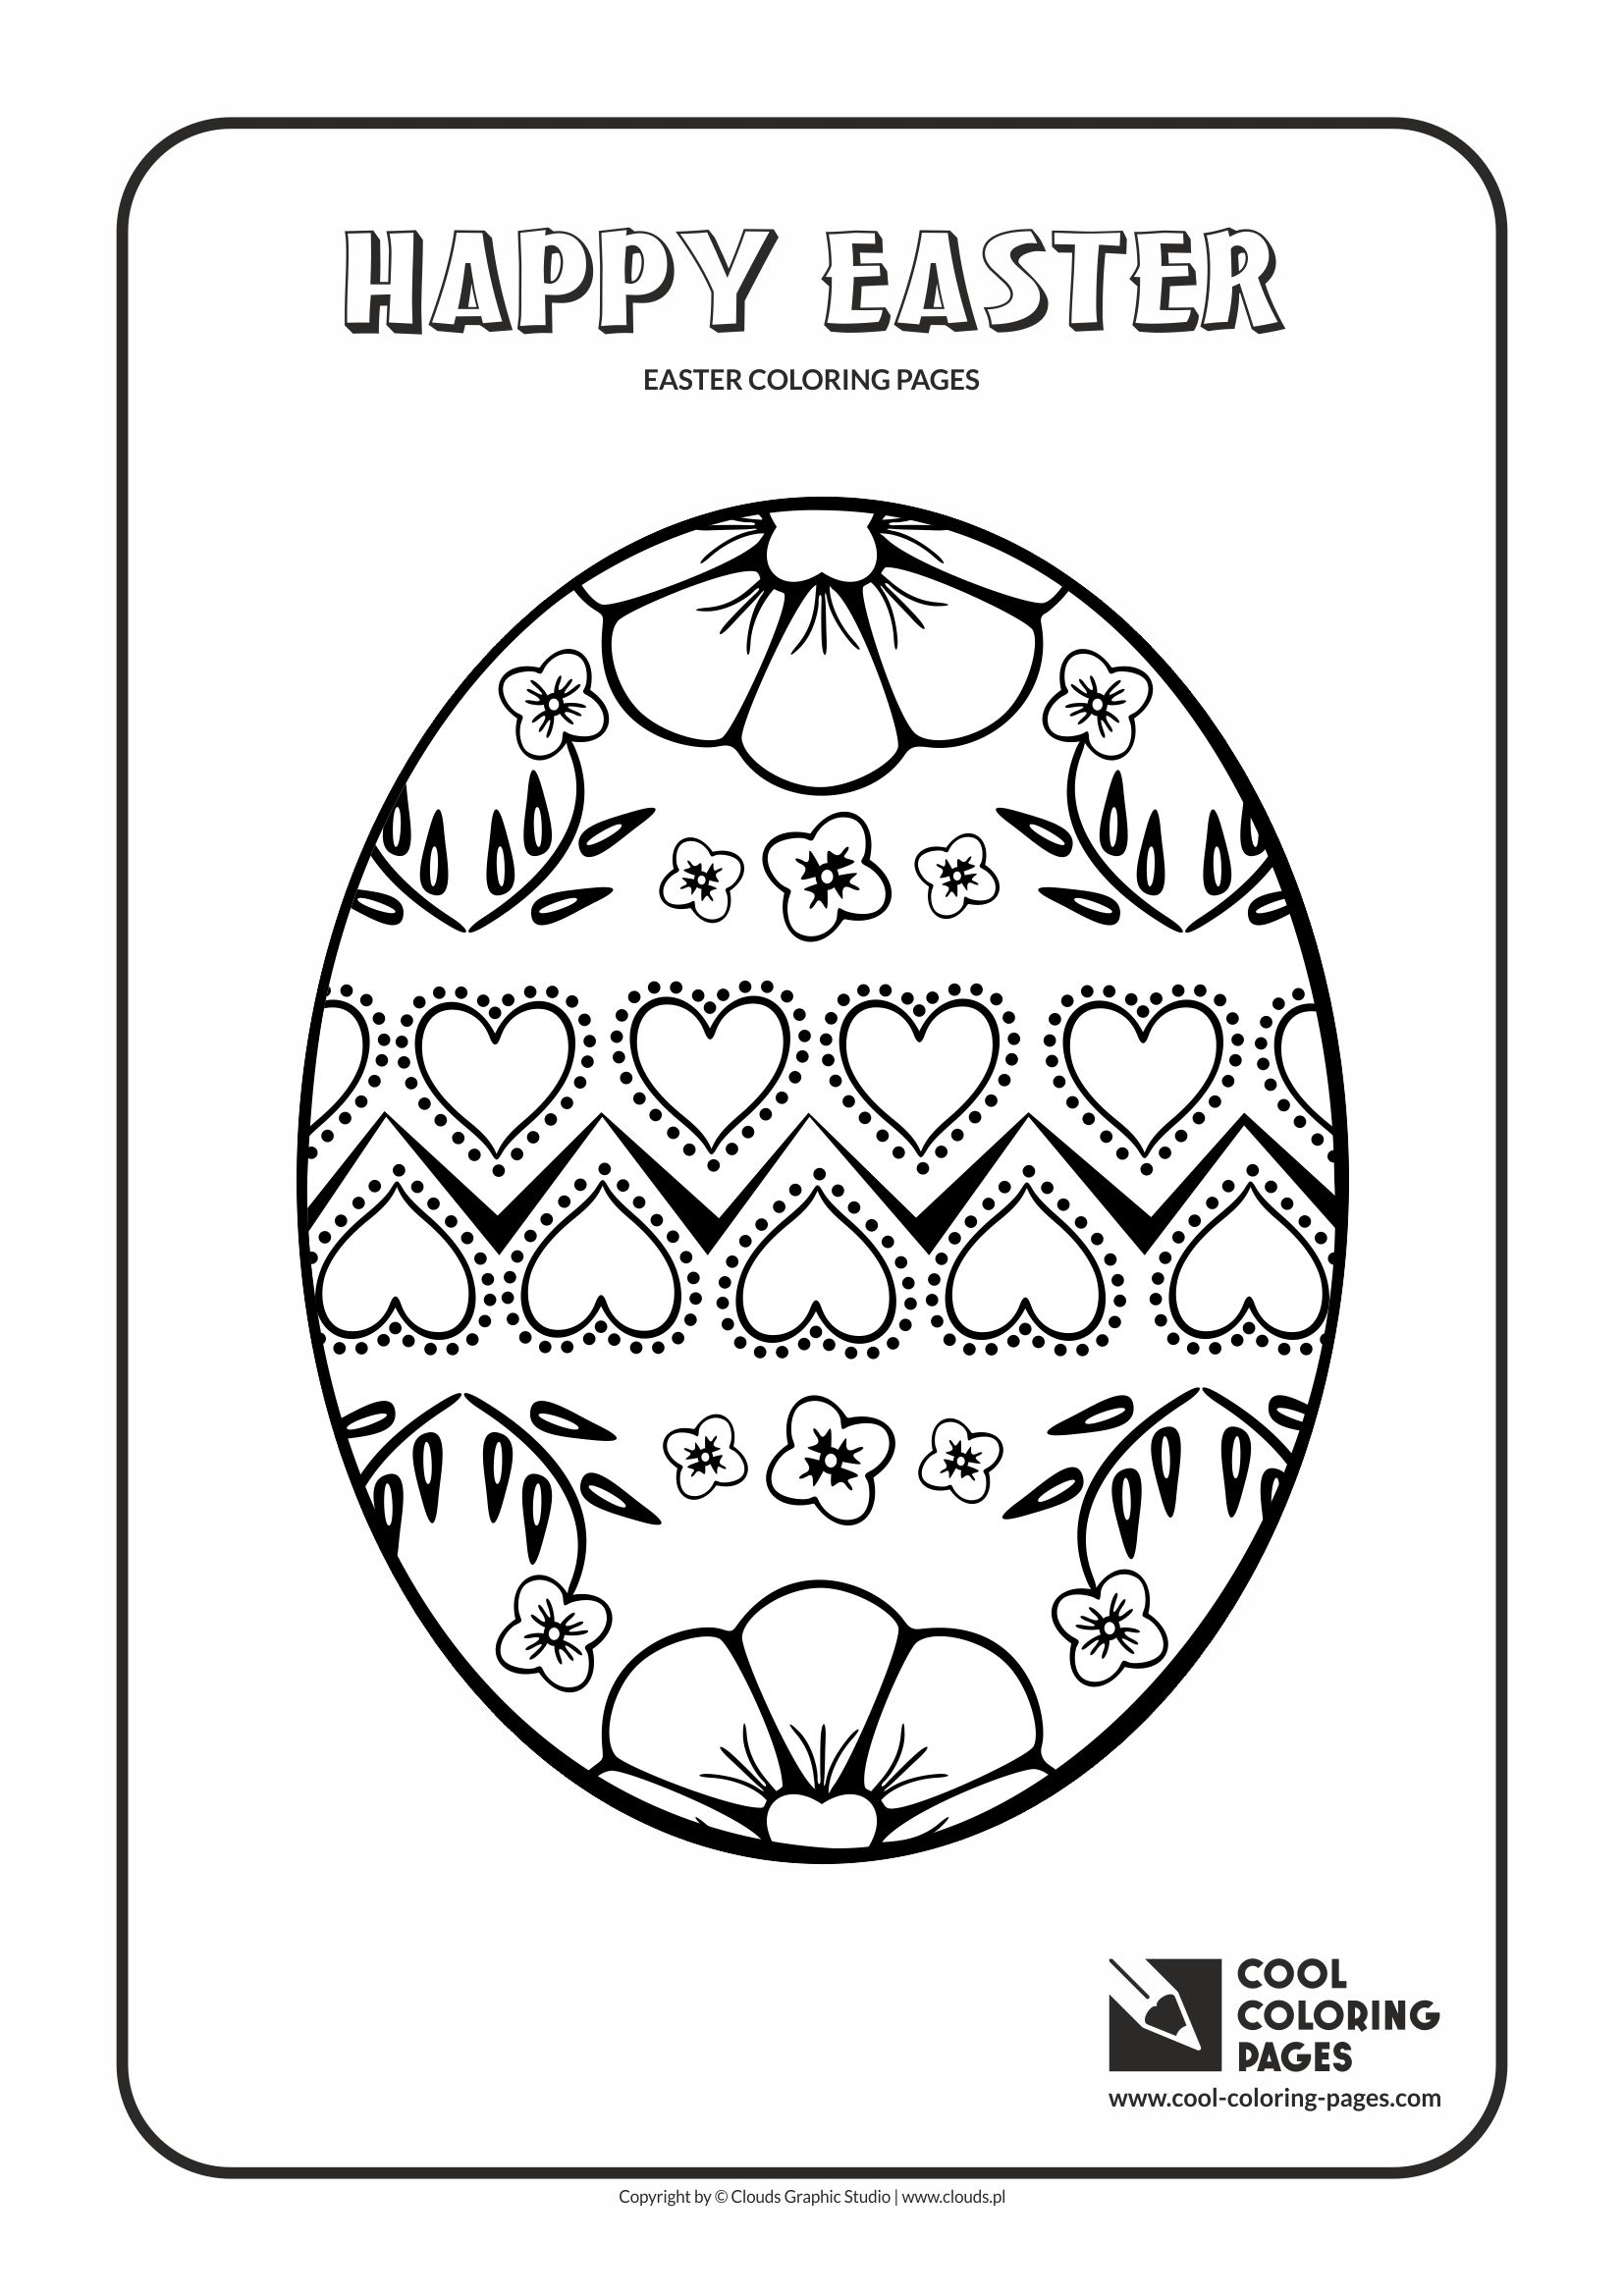 Cool Coloring Pages Easter Egg No 4 Coloring Page